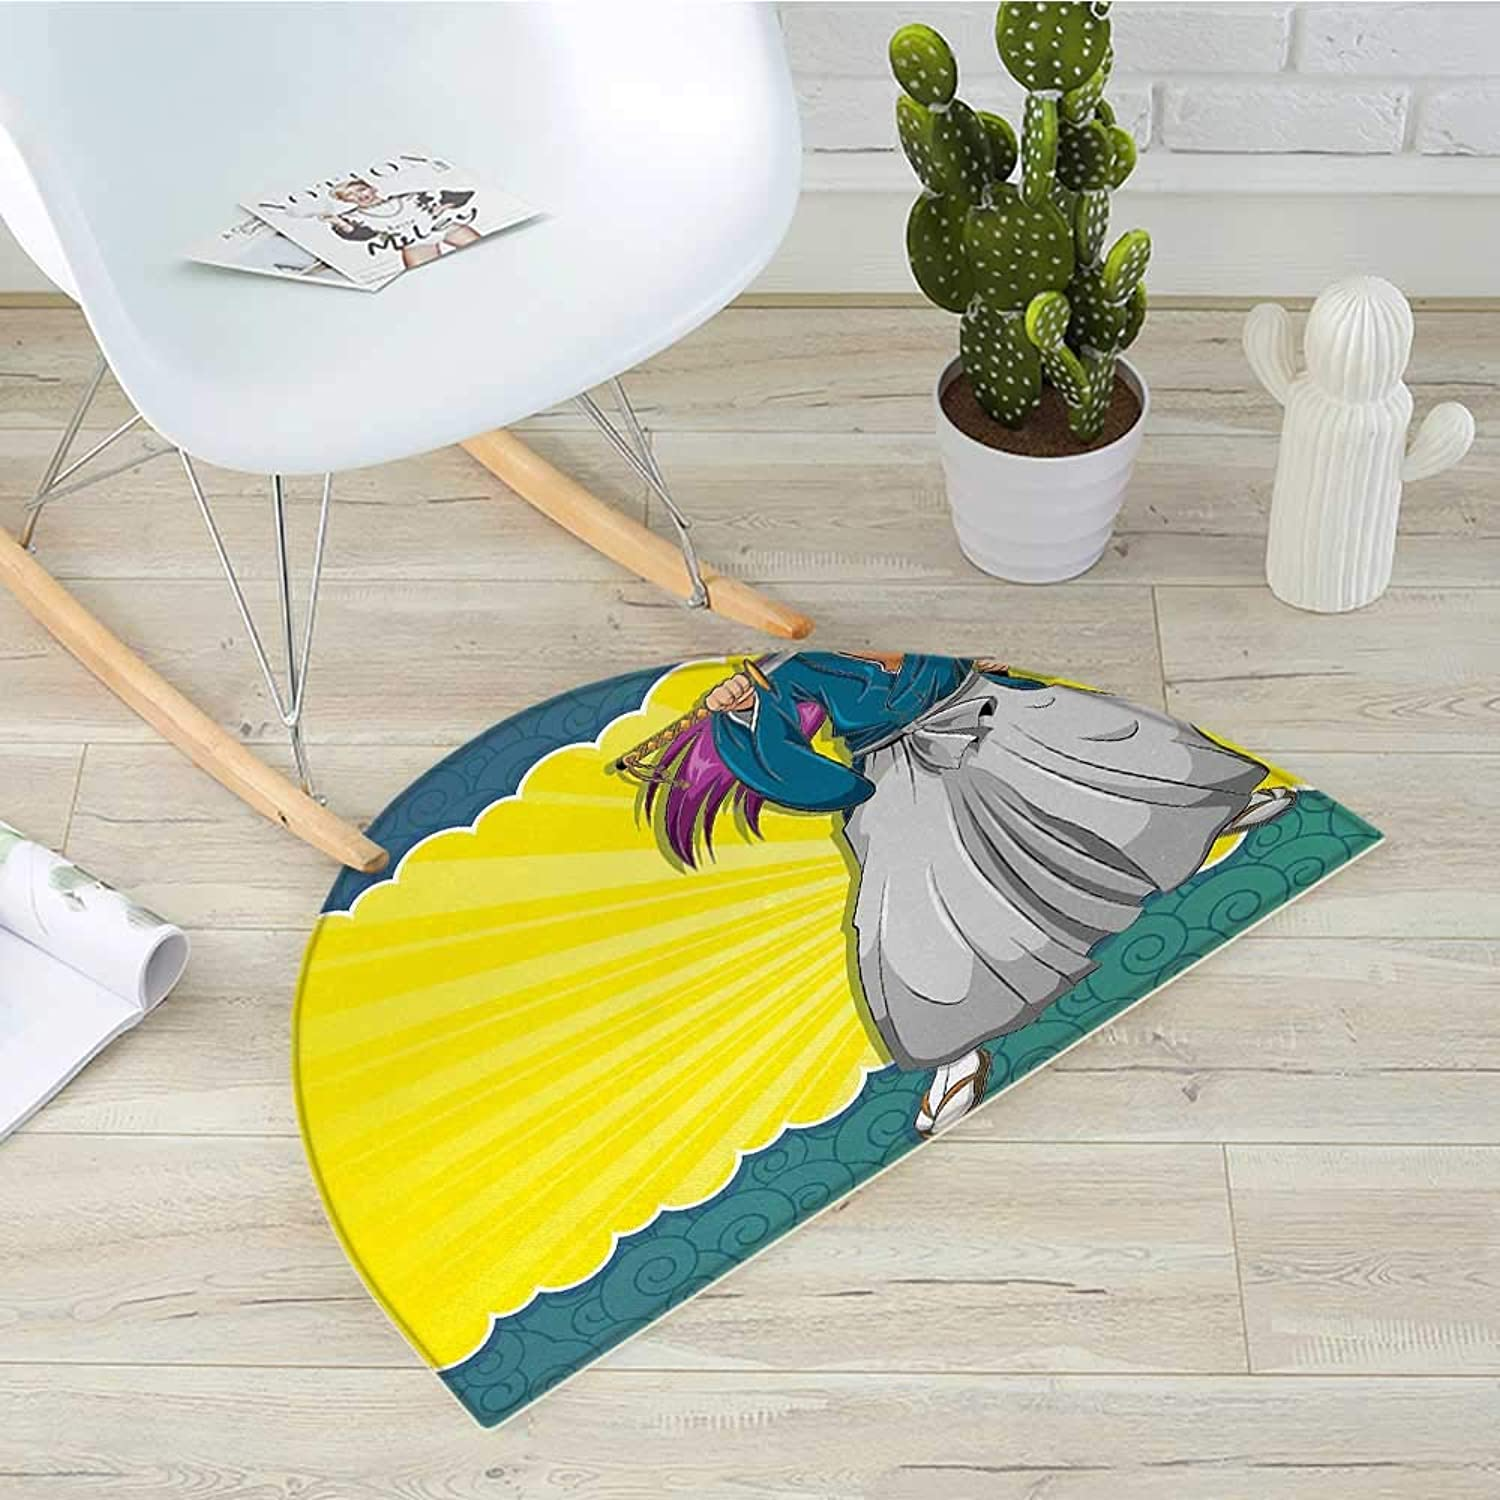 Anime Semicircle Doormat Manga Style Girl Samurai Warrior Character on Abstract Background in Yellow and bluee Halfmoon doormats H 31.5  xD 47.2  Multicolor